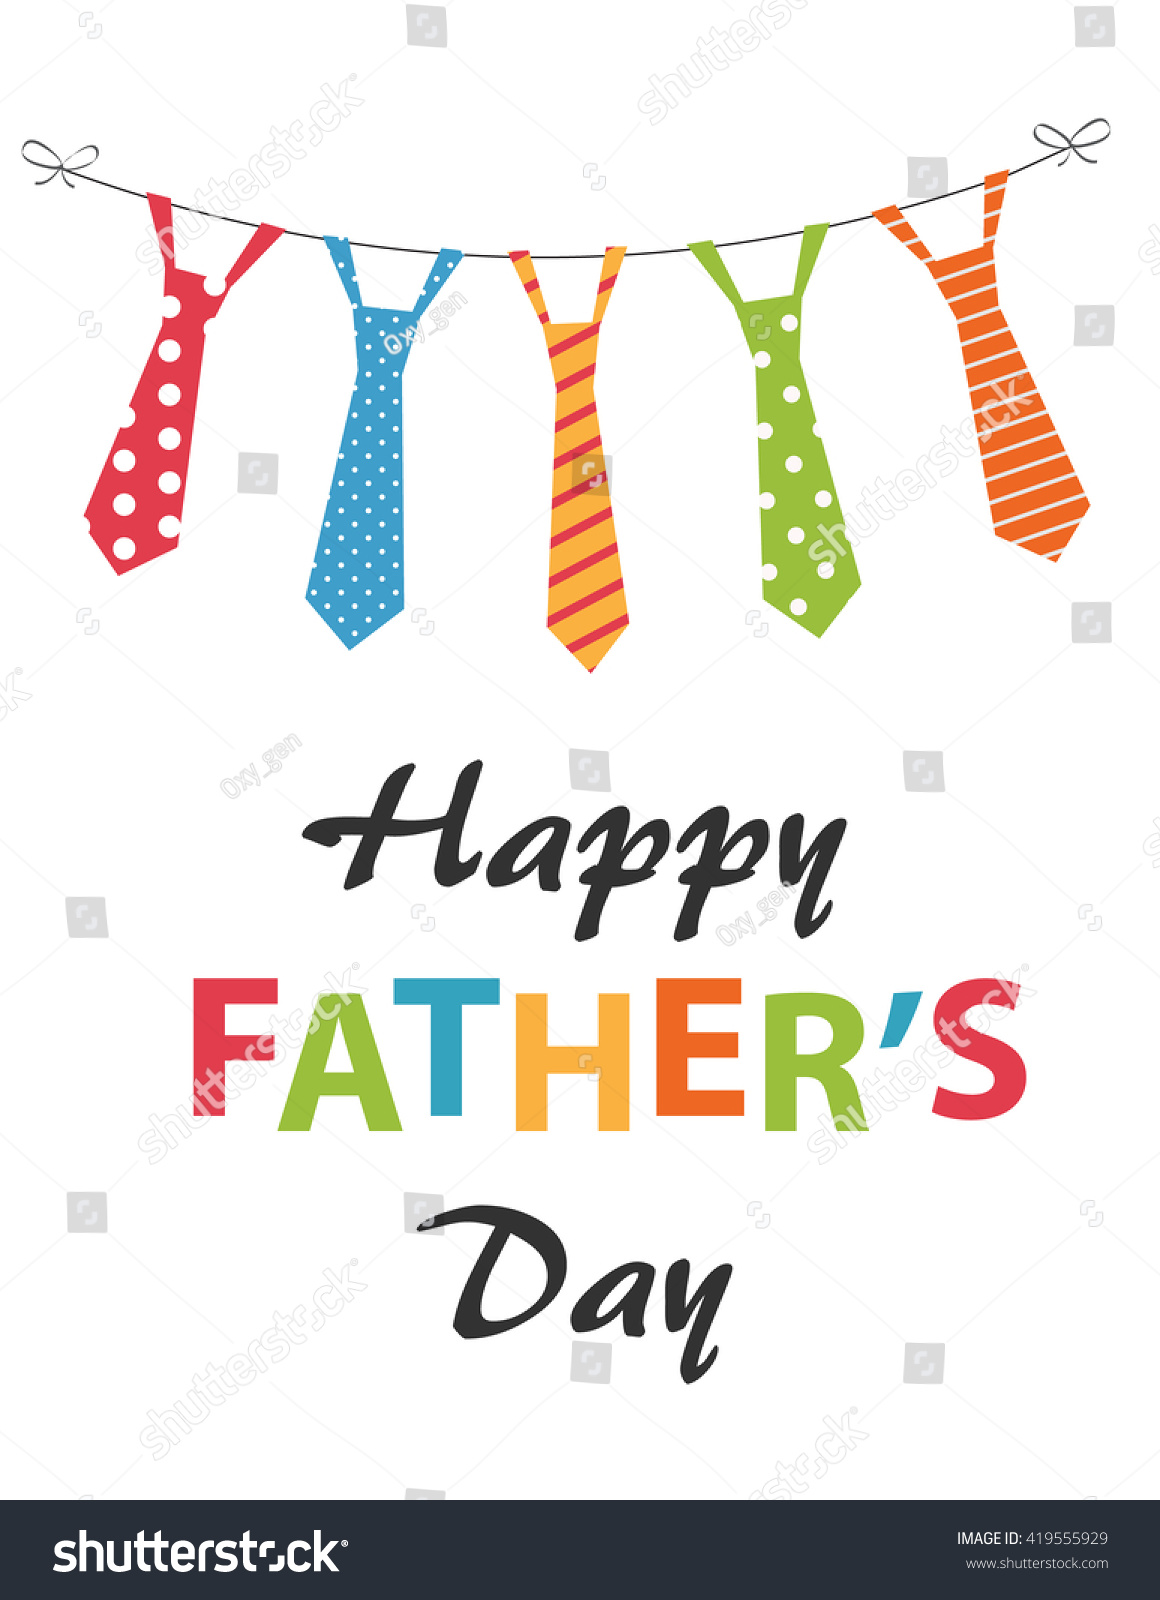 Happy Fathers Day Festive Card Hanging Lager-vektor ...